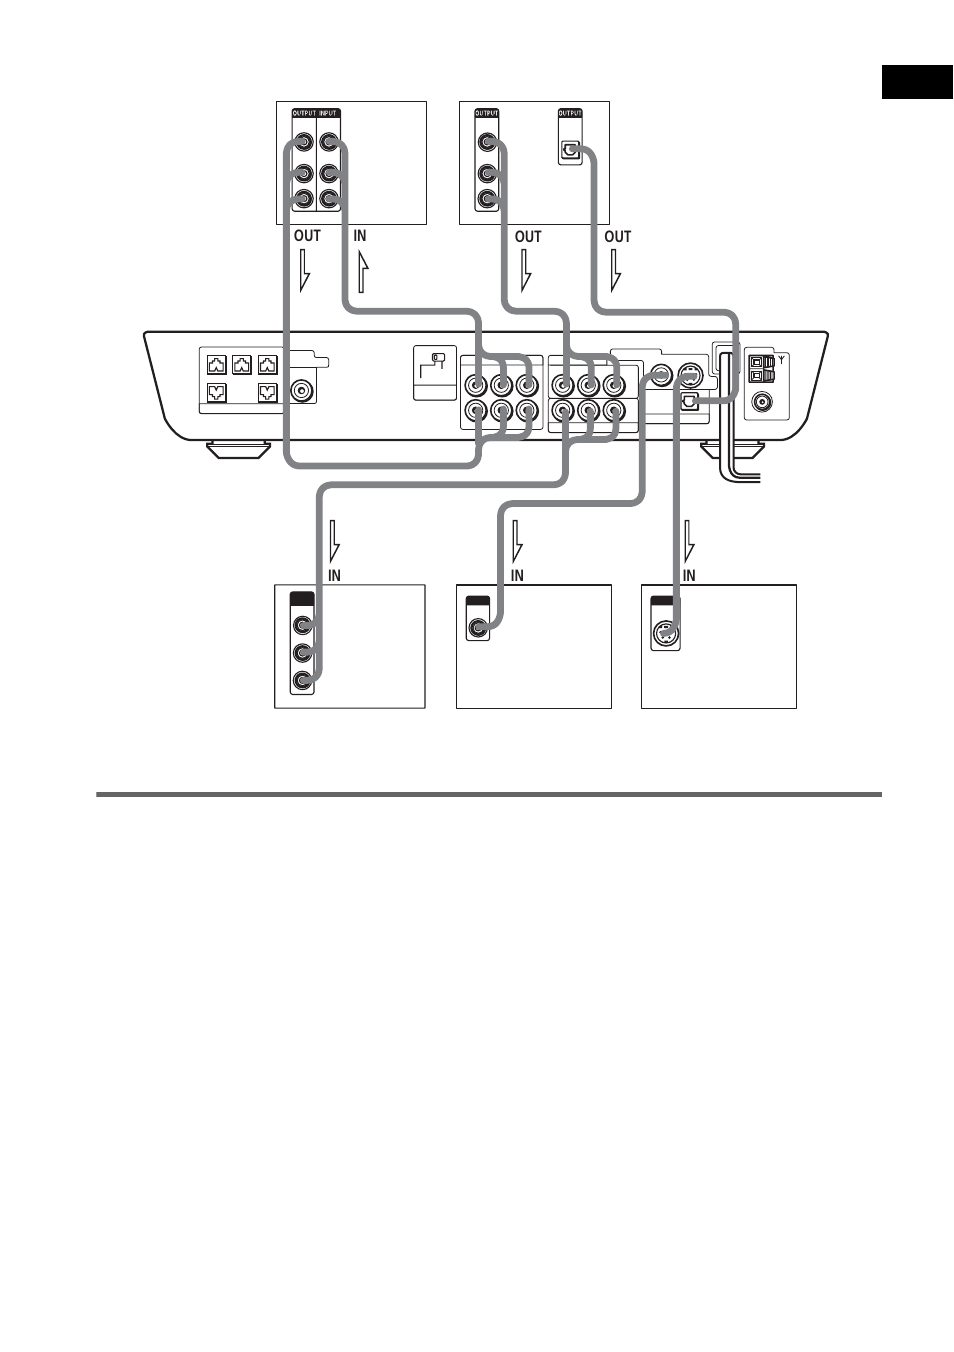 ge tting star te d sony ss ct8 user manual page 21 92 rh manualsdir com TracVision A5 Satellite TV System Marine Satellite TV Systems